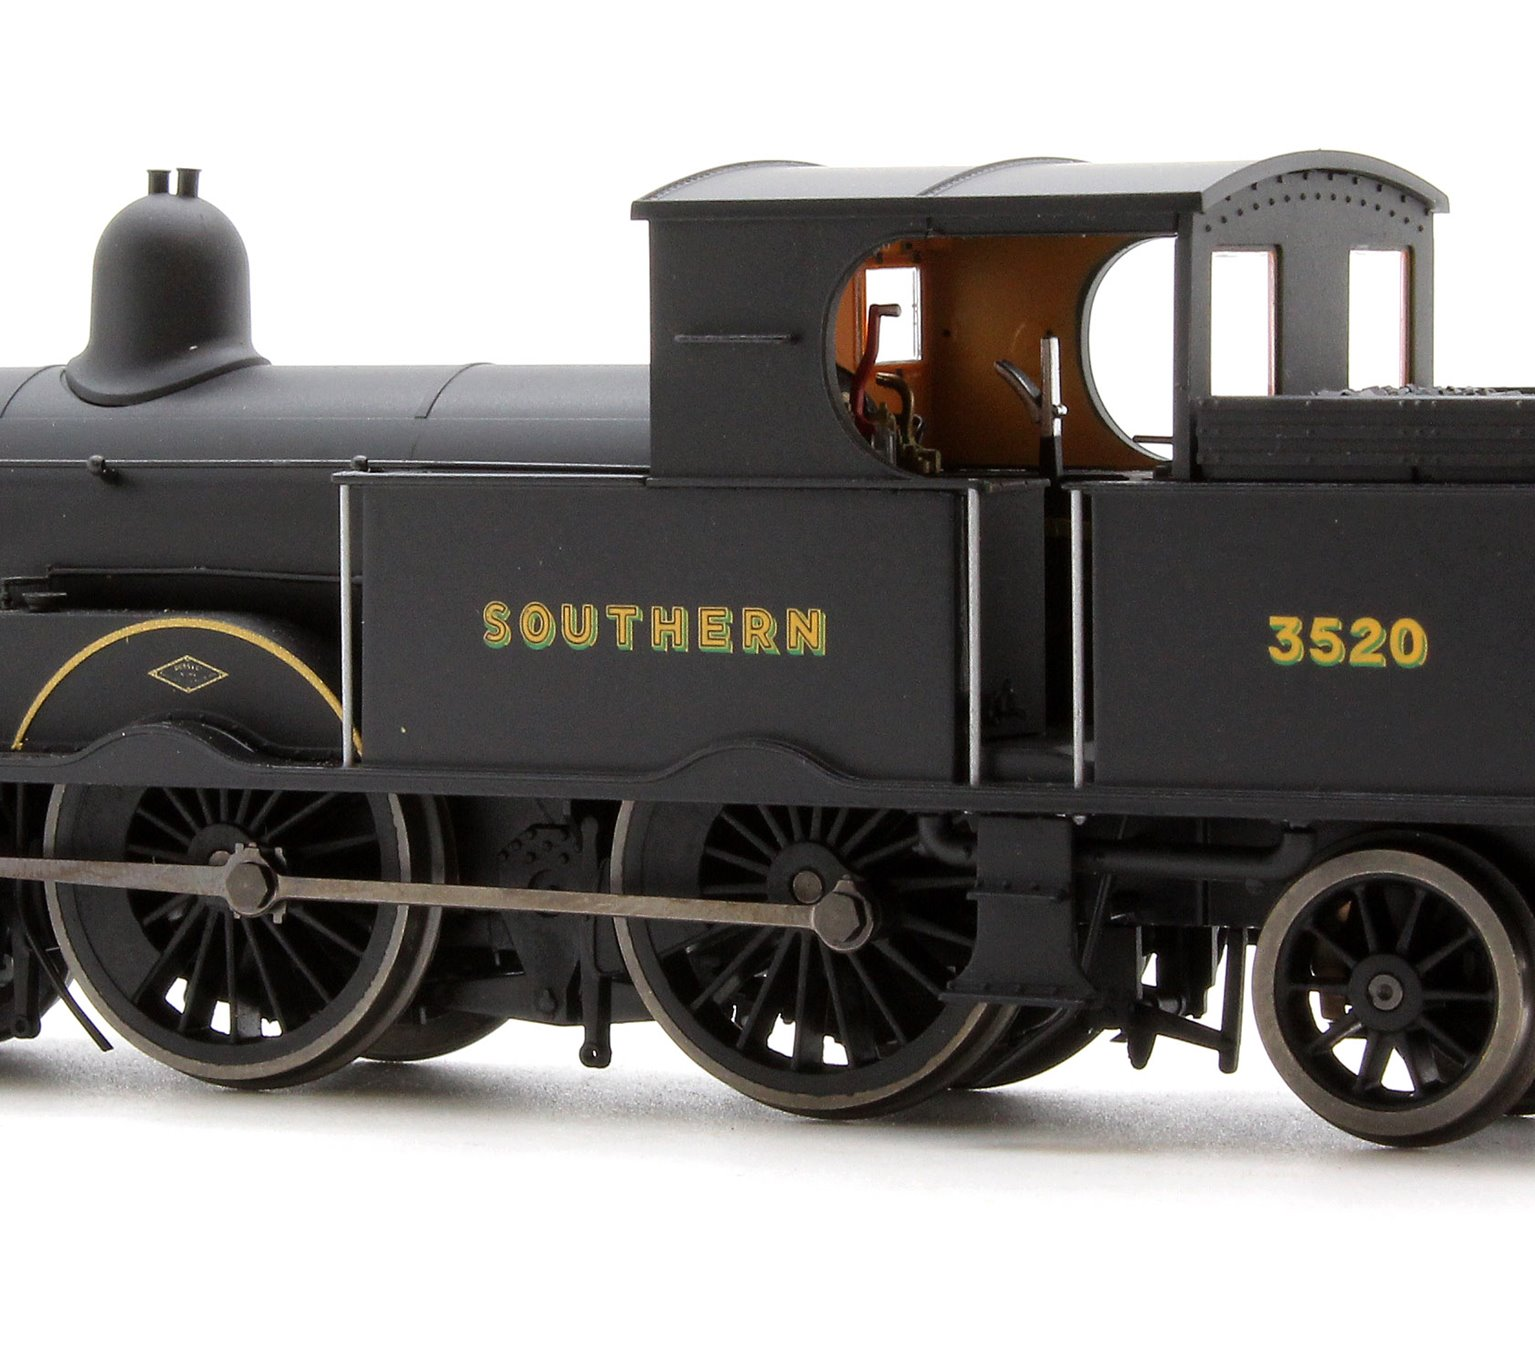 Adams Radial Steam Locomotive number 3520